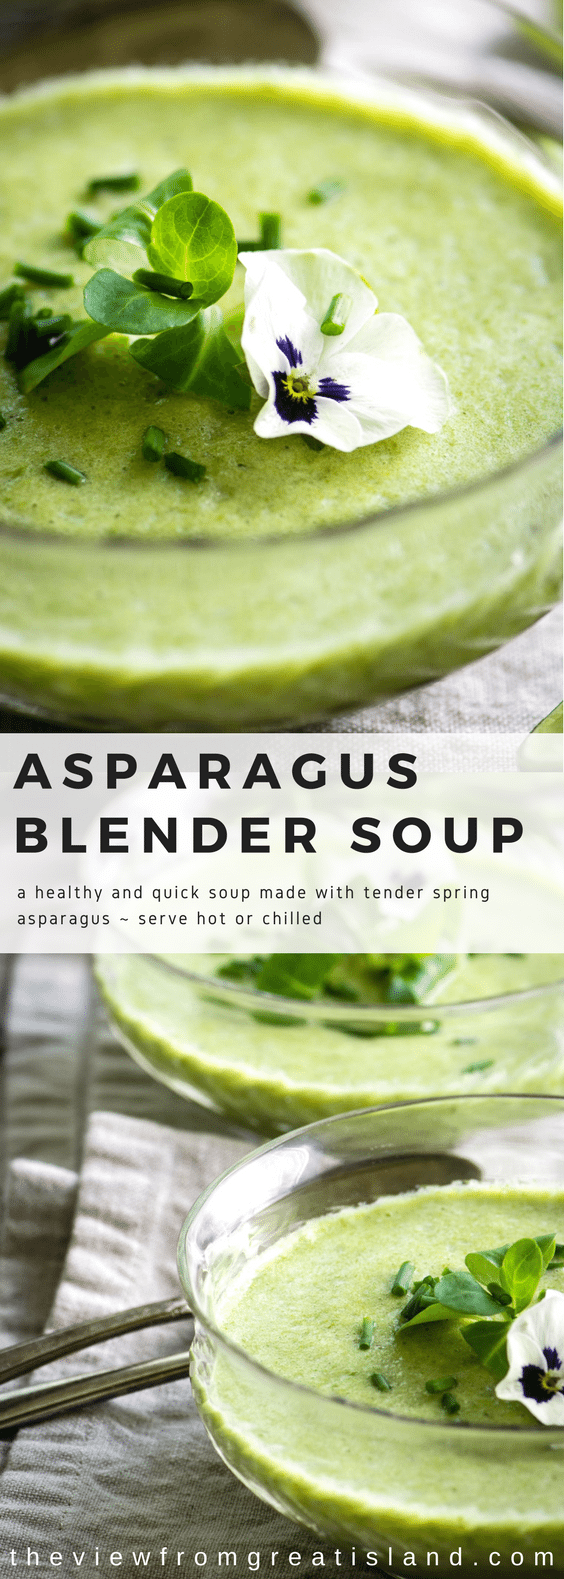 I make this Fresh Asparagus Soup super easily in the blender! #soup #blendersoup #asparagus #asparagussoup #asparagusrecipe #springsoup #eastersoup #mothersday #glutenfree #whole30 #paleo #weightwatchers #soupshooters #creamofasparagus #raw #rawsoup #vitamix #blendtec #appetizer